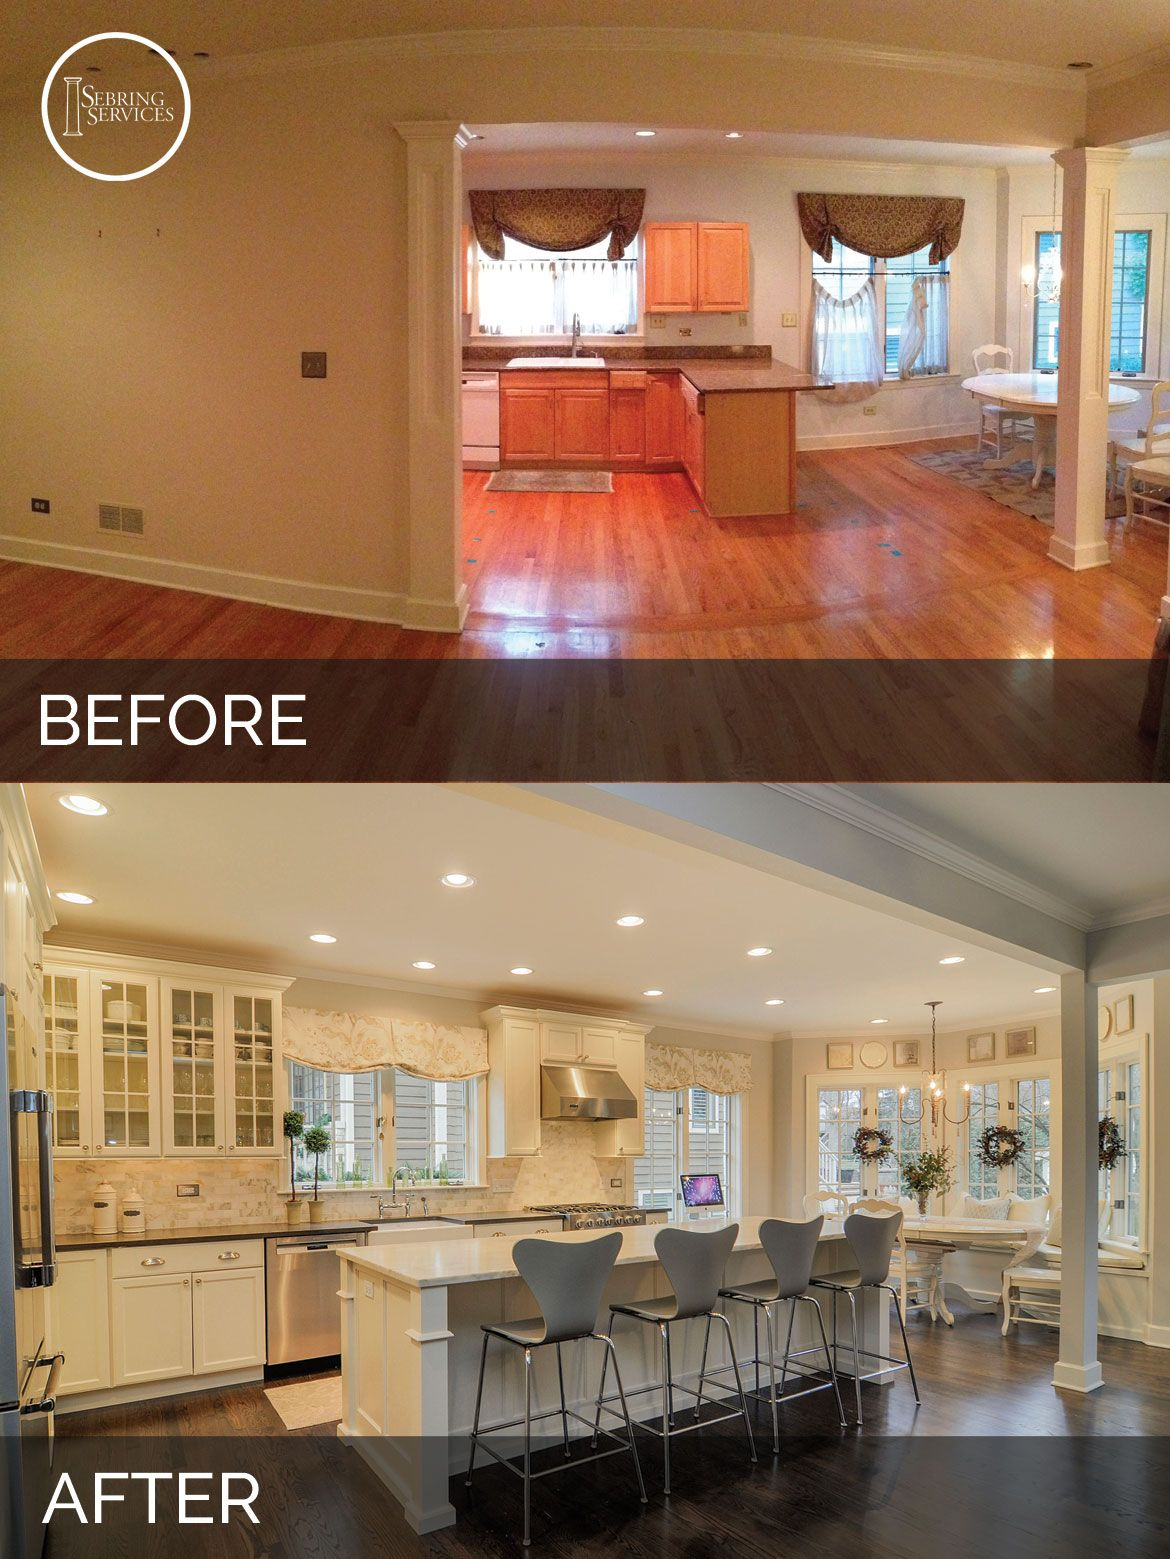 remodel a kitchen and bathroom check out some website designs home decor before after remodeling sebring services